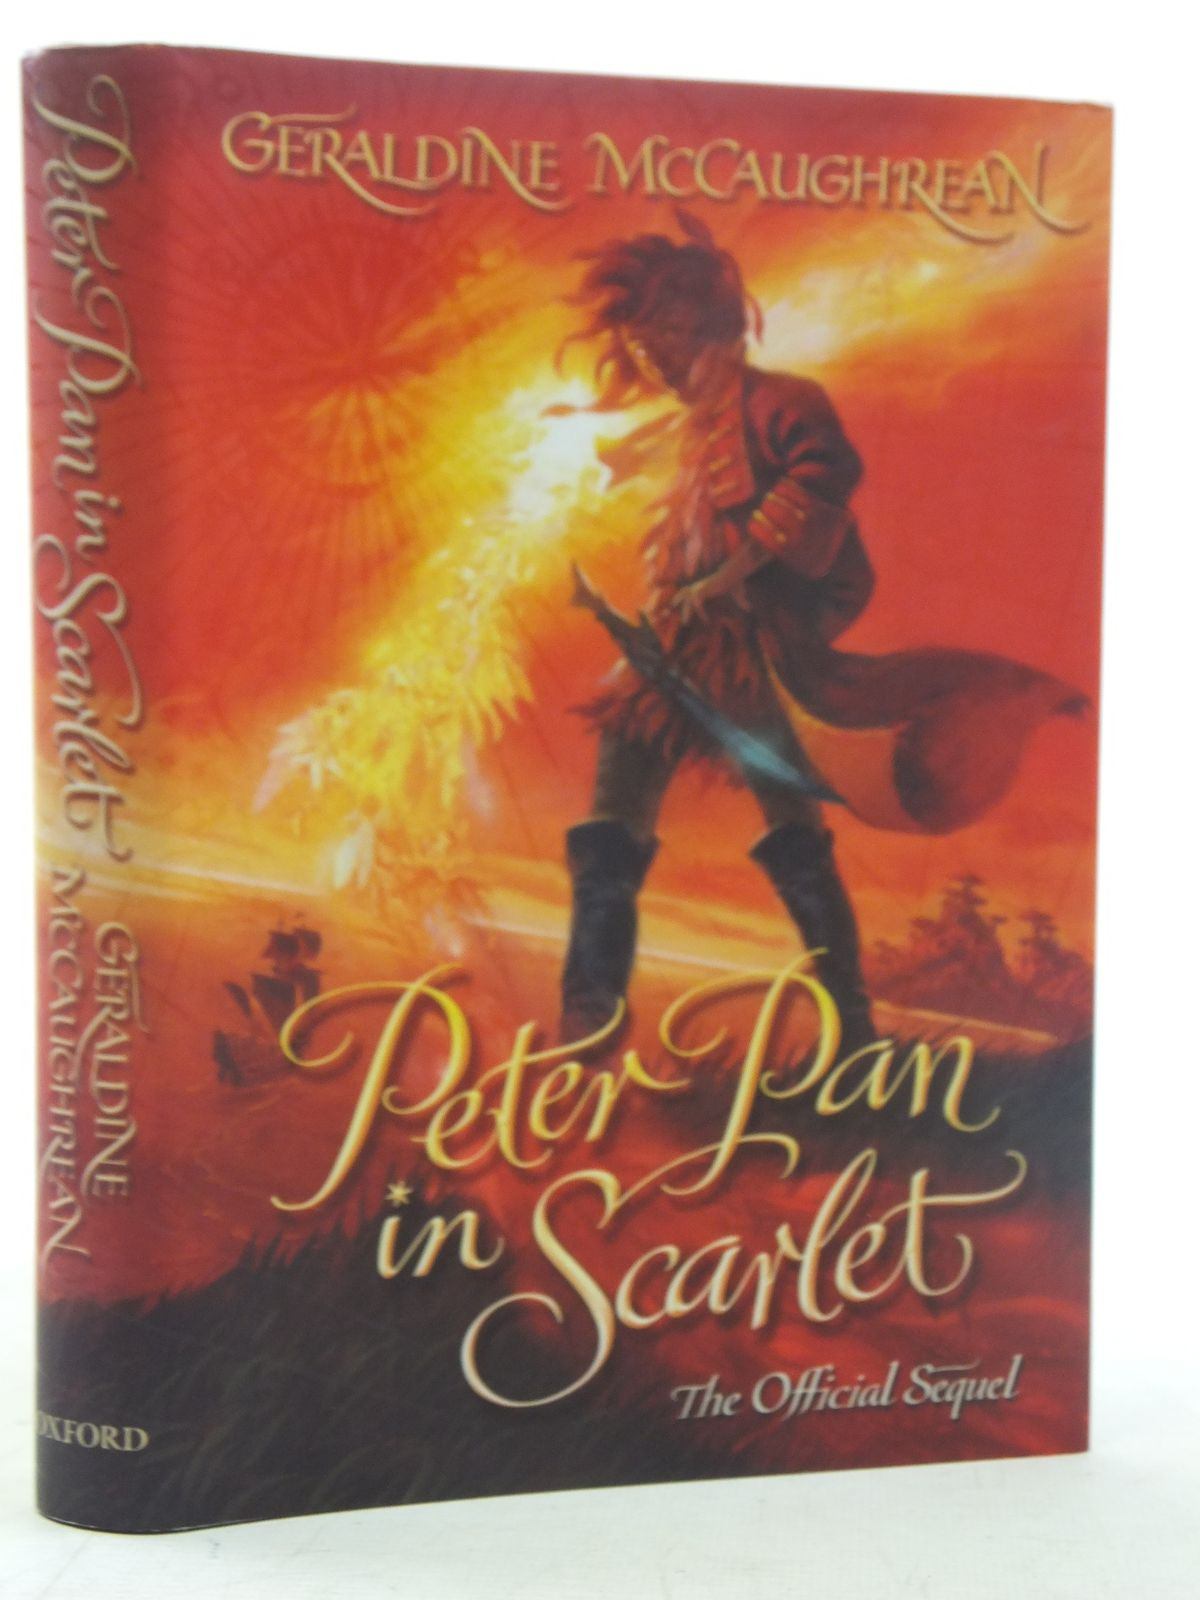 Photo of PETER PAN IN SCARLET written by McCaughrean, Geraldine illustrated by Wyatt, David published by Oxford University Press (STOCK CODE: 2117655)  for sale by Stella & Rose's Books